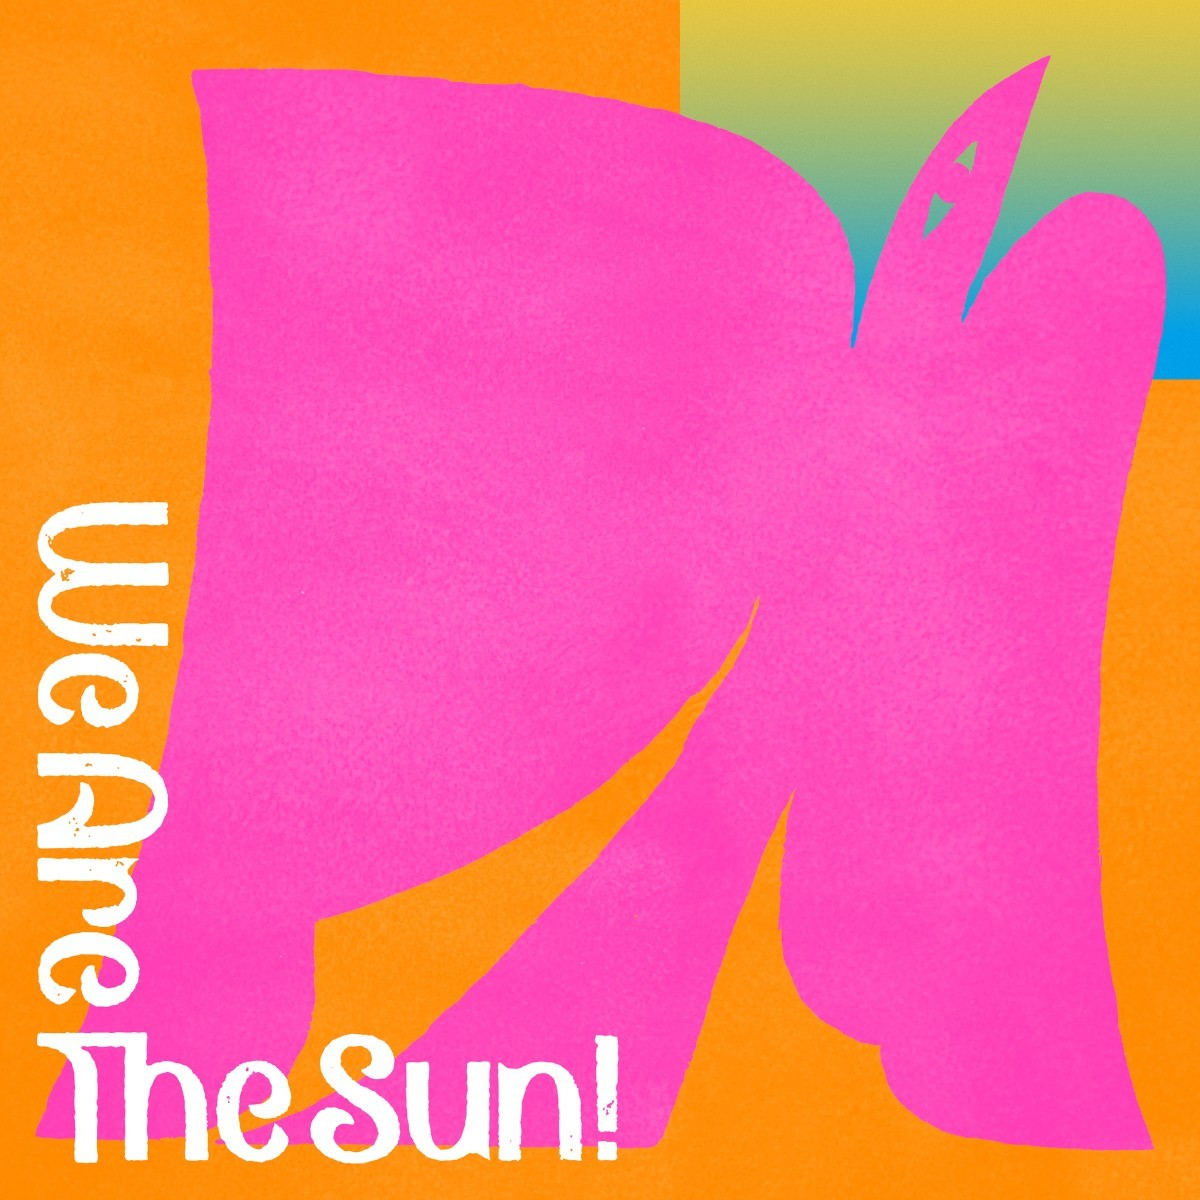 TAMTAM (タムタム) – We Are The Sun! [FLAC + AAC 256 / WEB] [2020.05.20]